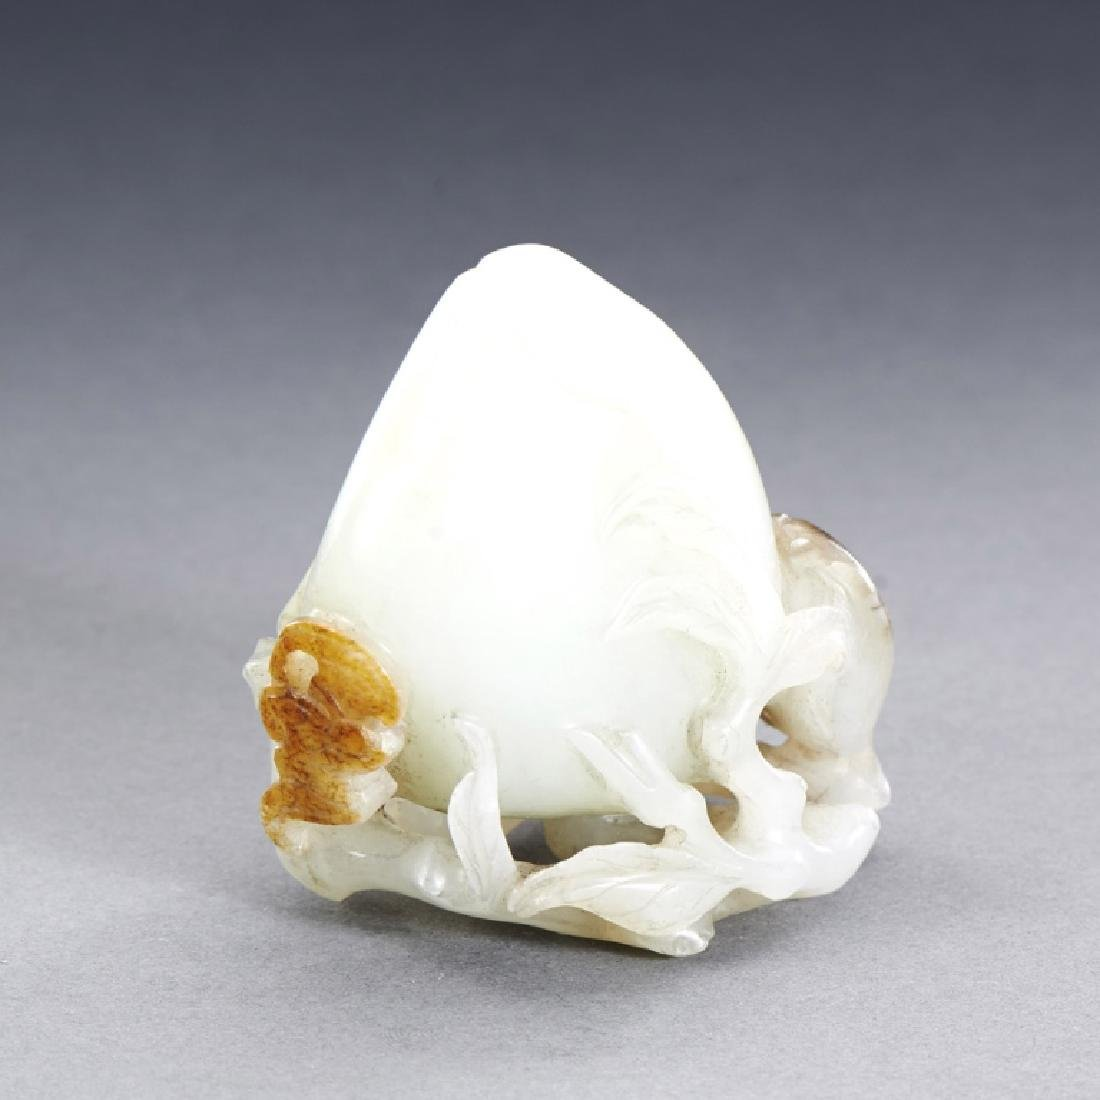 CHINESE WHITE AND RUSSET JADE PEACH CARVING